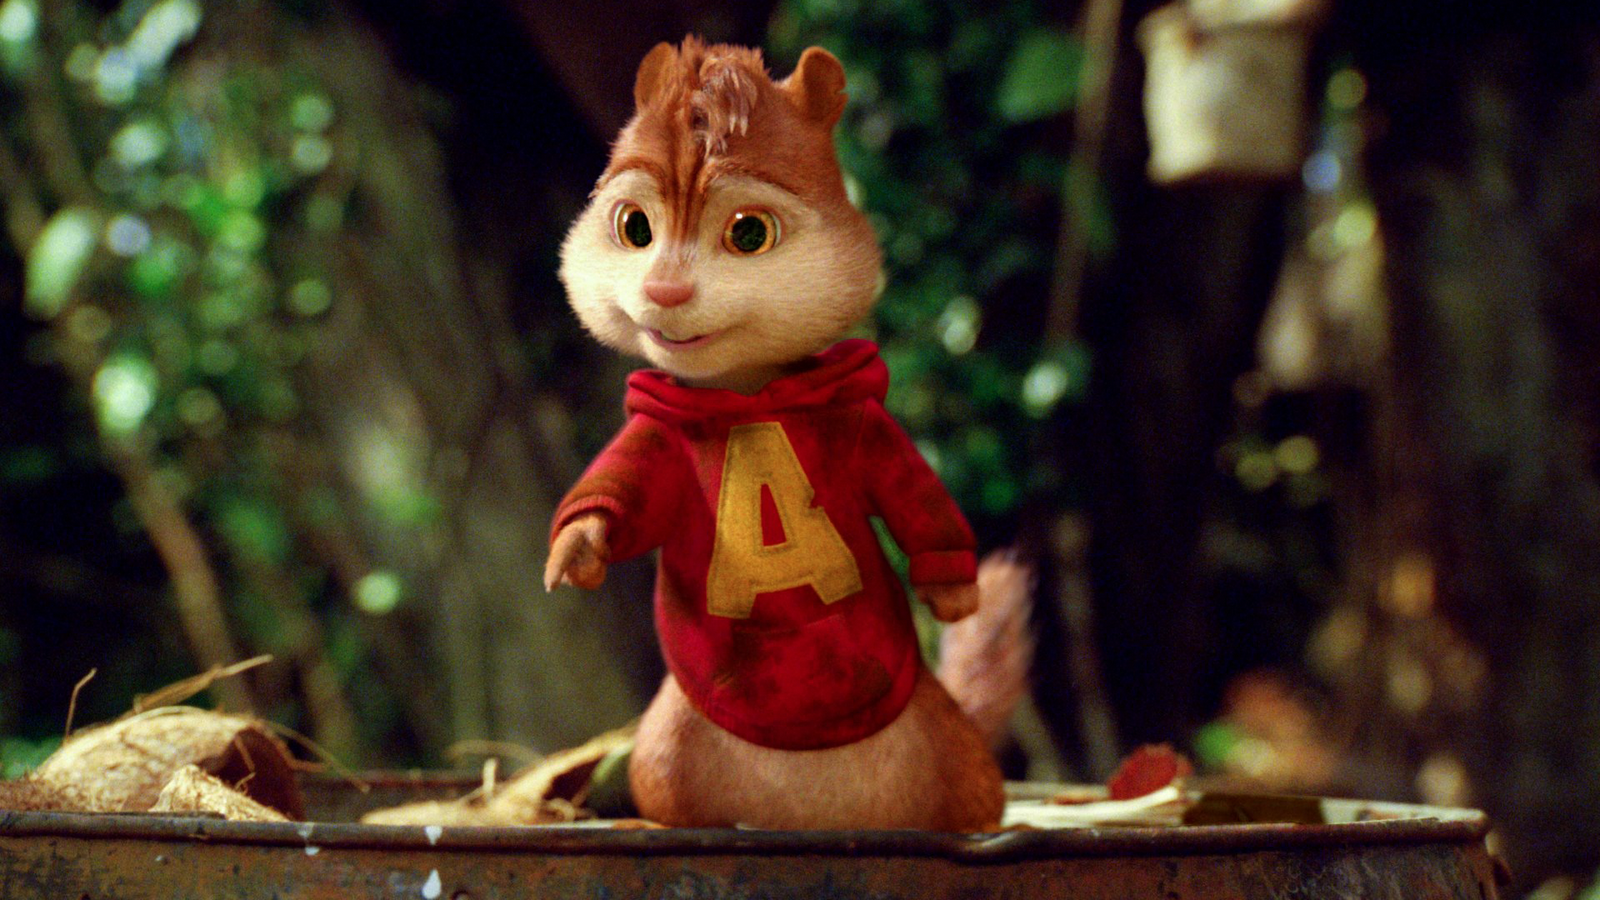 Free Download Wallpaper Alvin And The Chipmunks Chipwrecked Movie